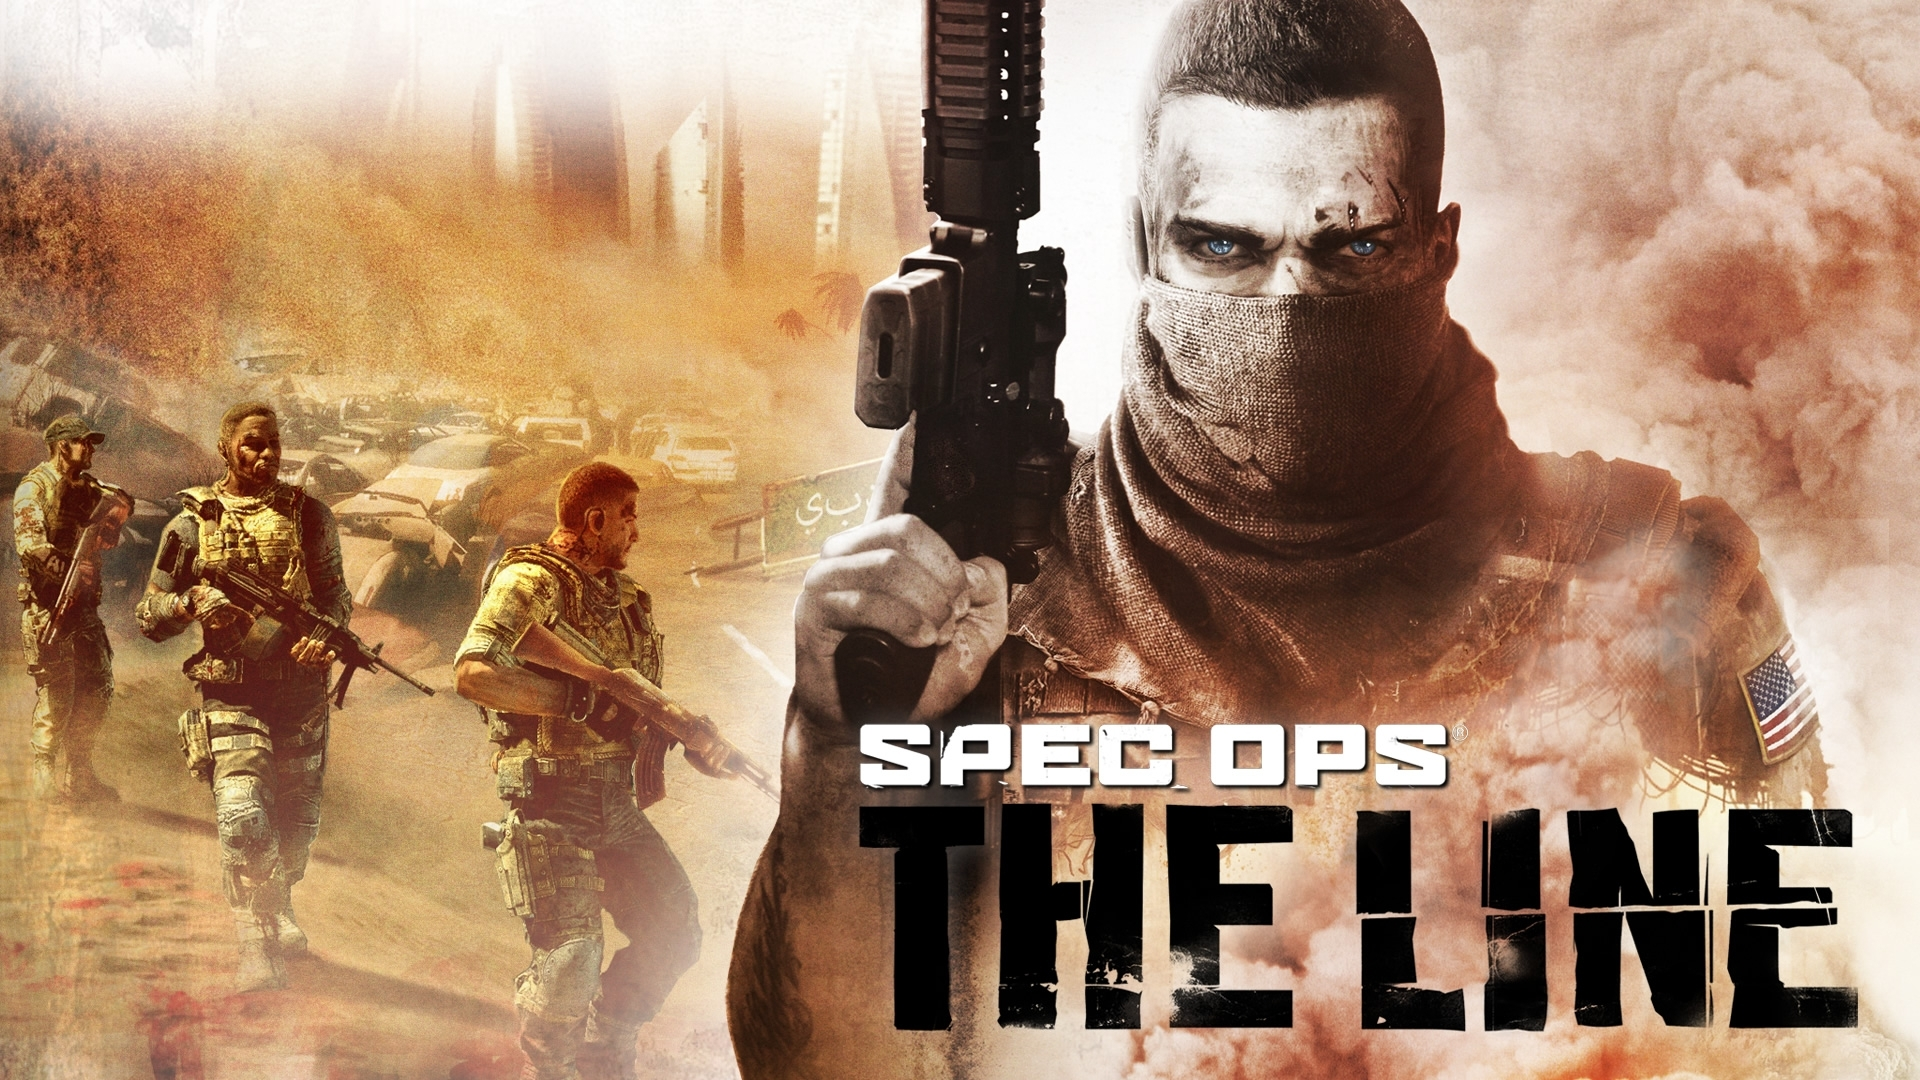 spec ops the line wallpaper (hd)